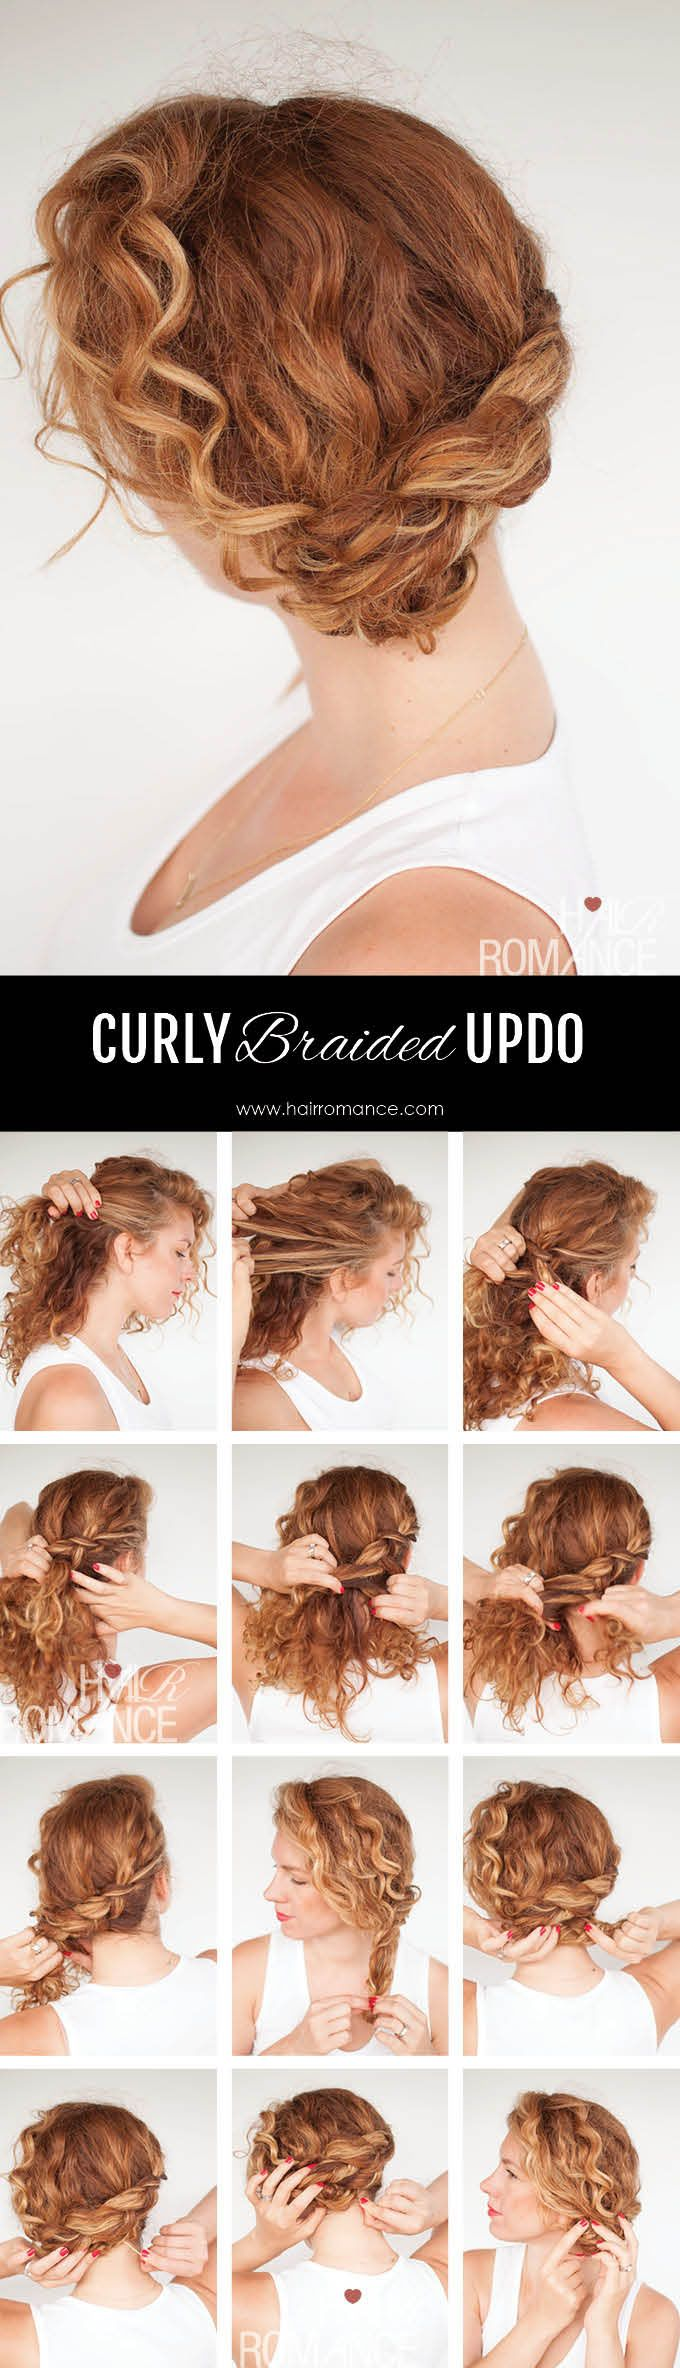 New curly hairstyle tutorial tips for braiding curly hair